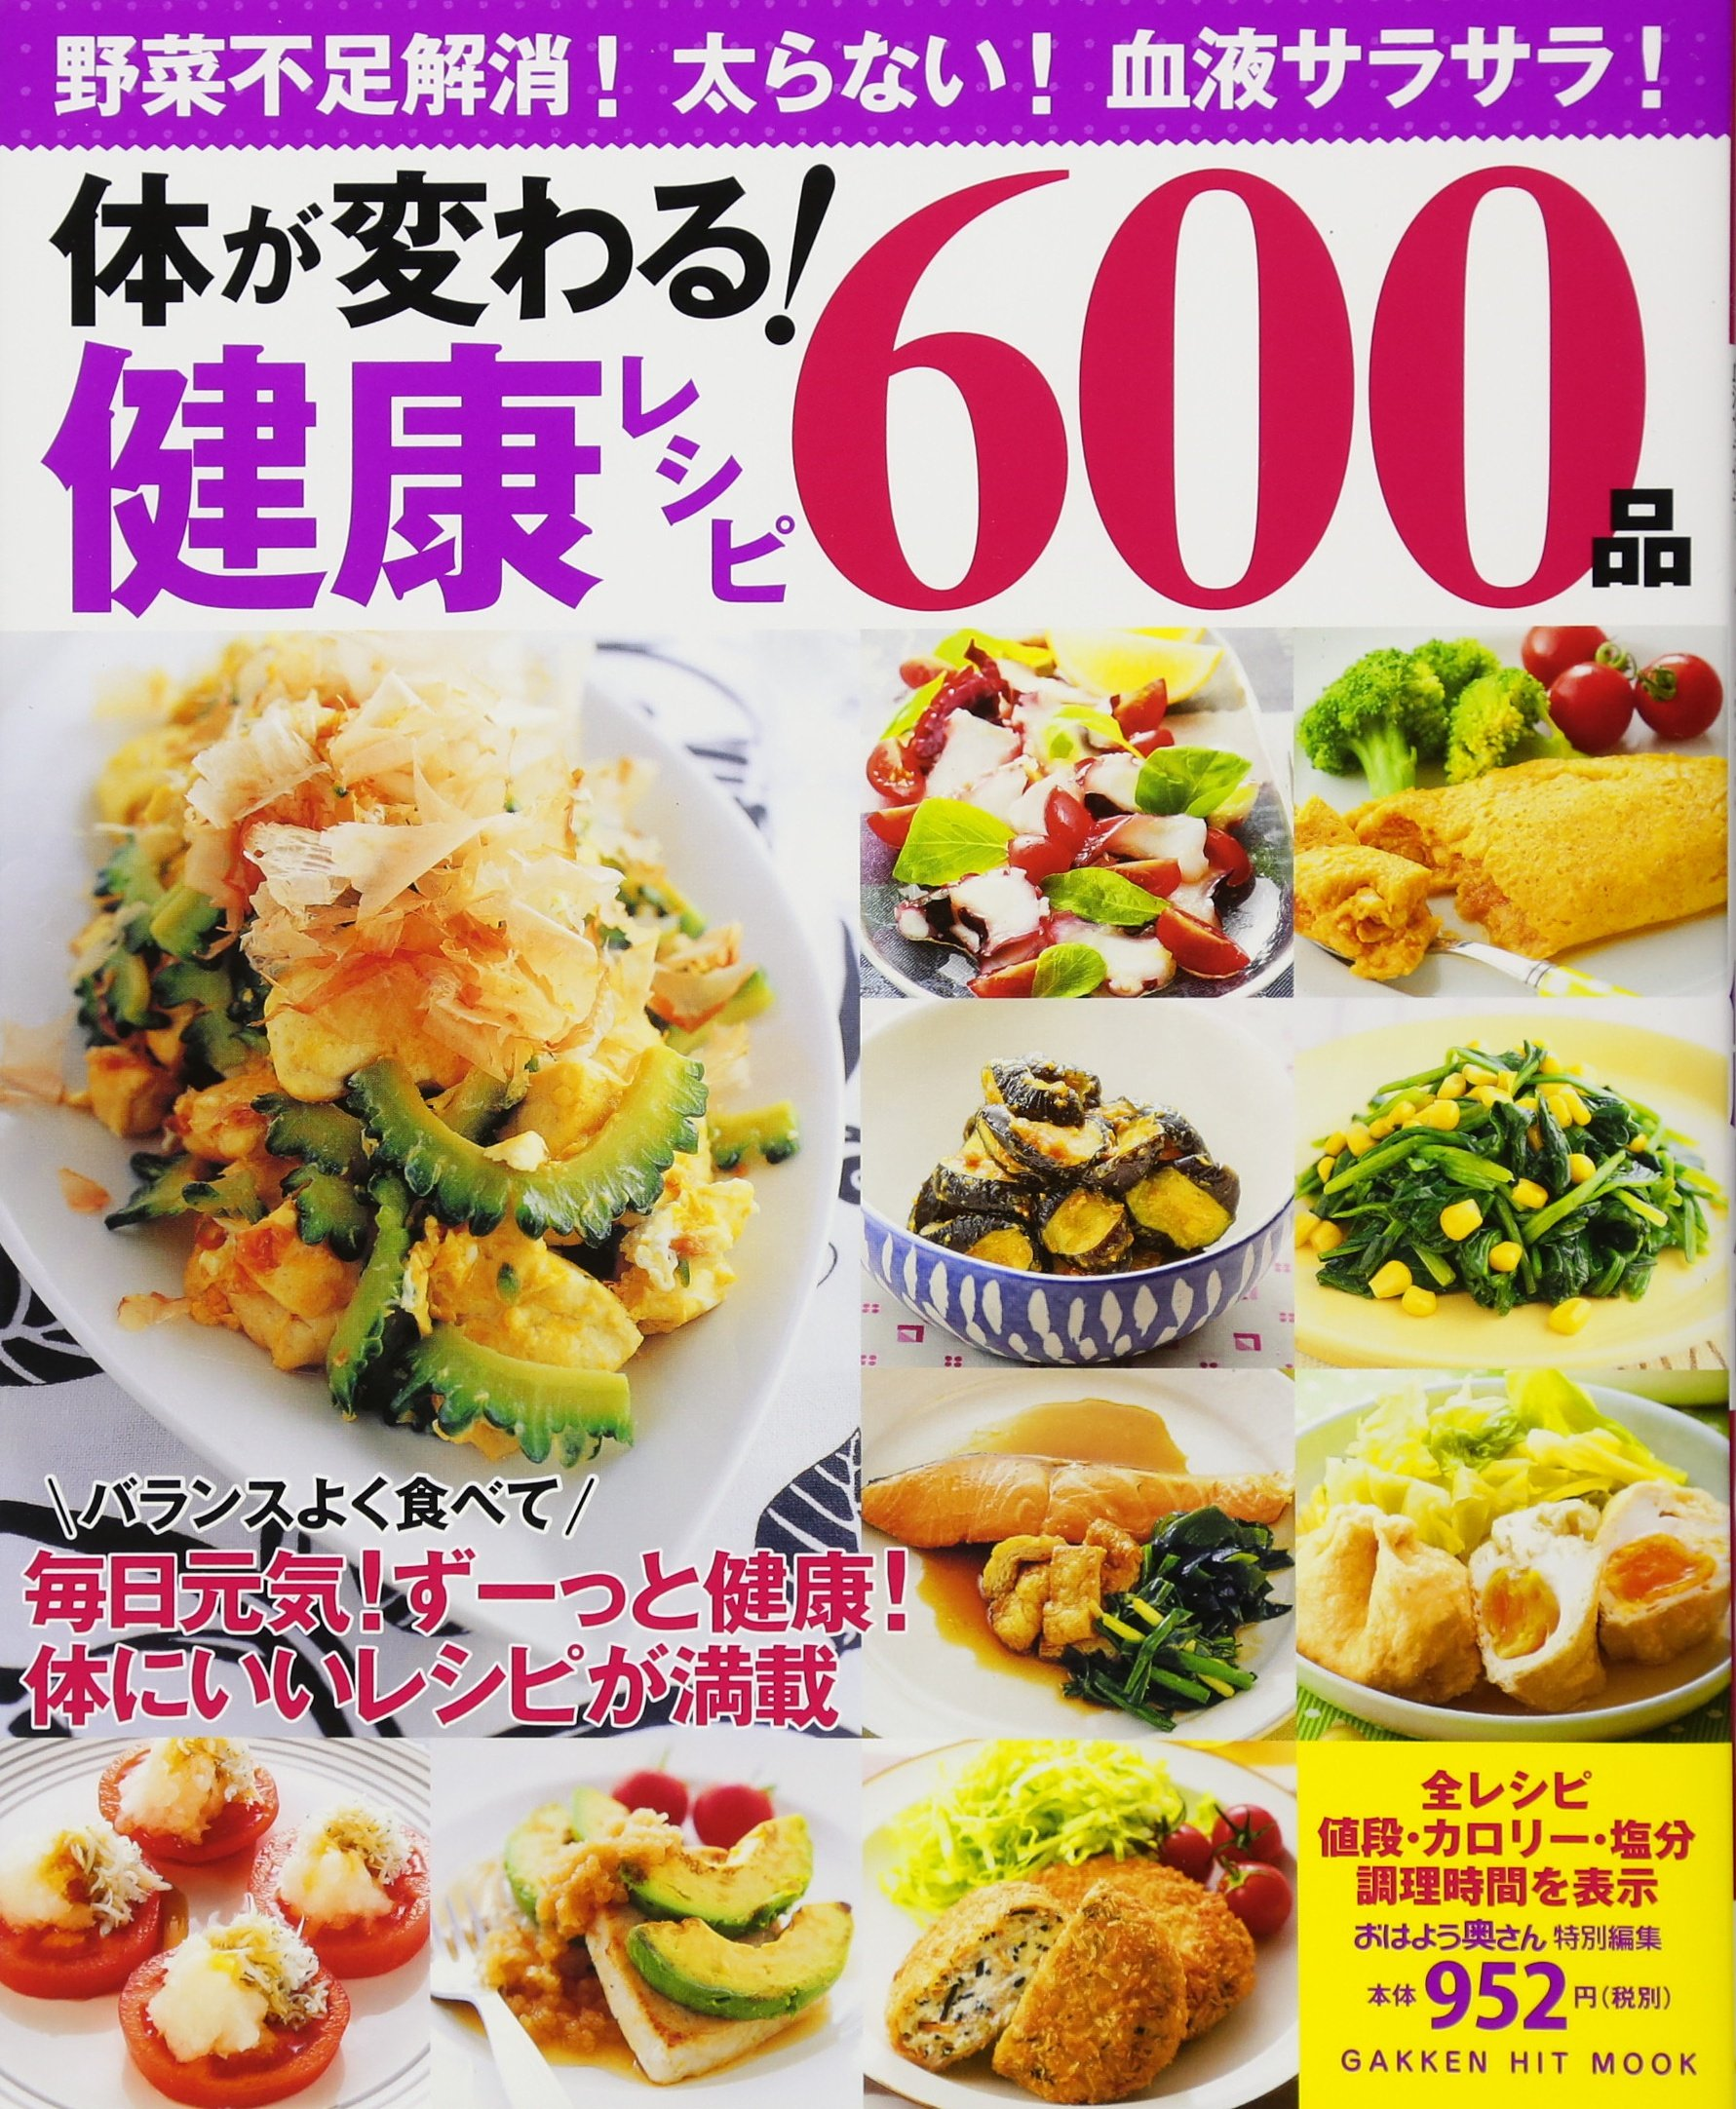 Download Body changes! 600 healthy recipes from (GAKKEN HIT MOOK) (2013) ISBN: 4056100705 [Japanese Import] pdf